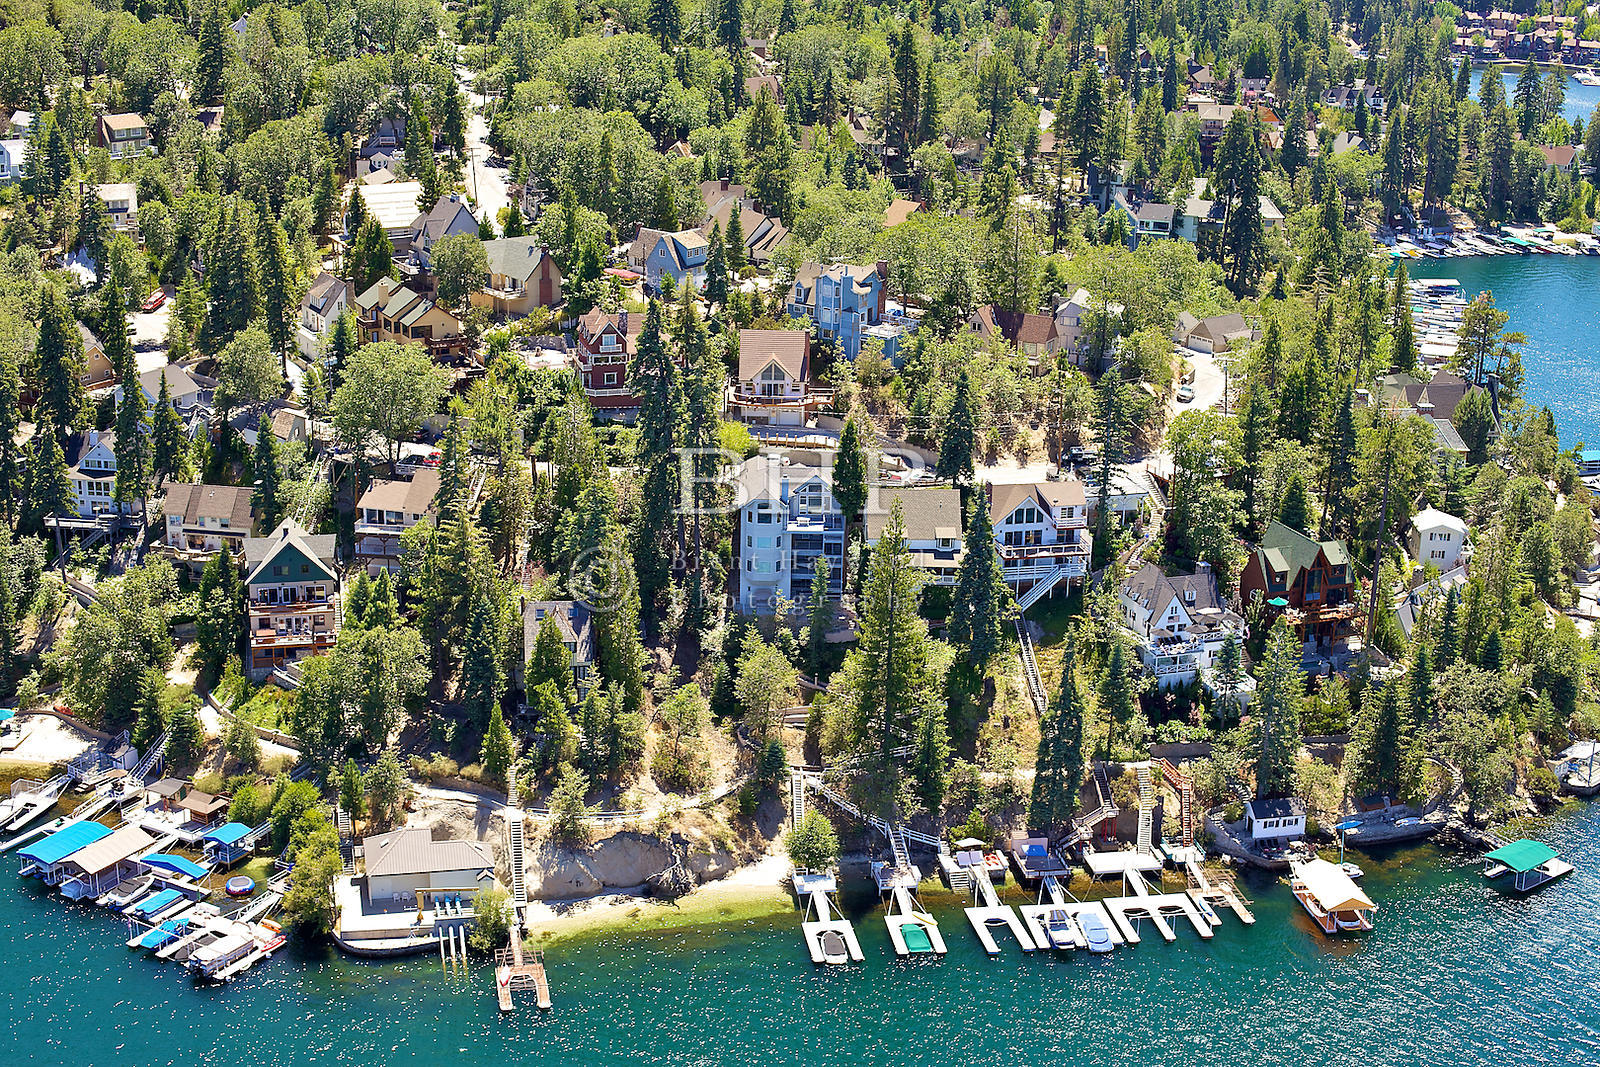 ... Haywood Photography | Lake Arrowhead Aerial Photography Photographer: www.brenthaywoodphotography.com/media/01326ed8-46f5-11e3-9650...